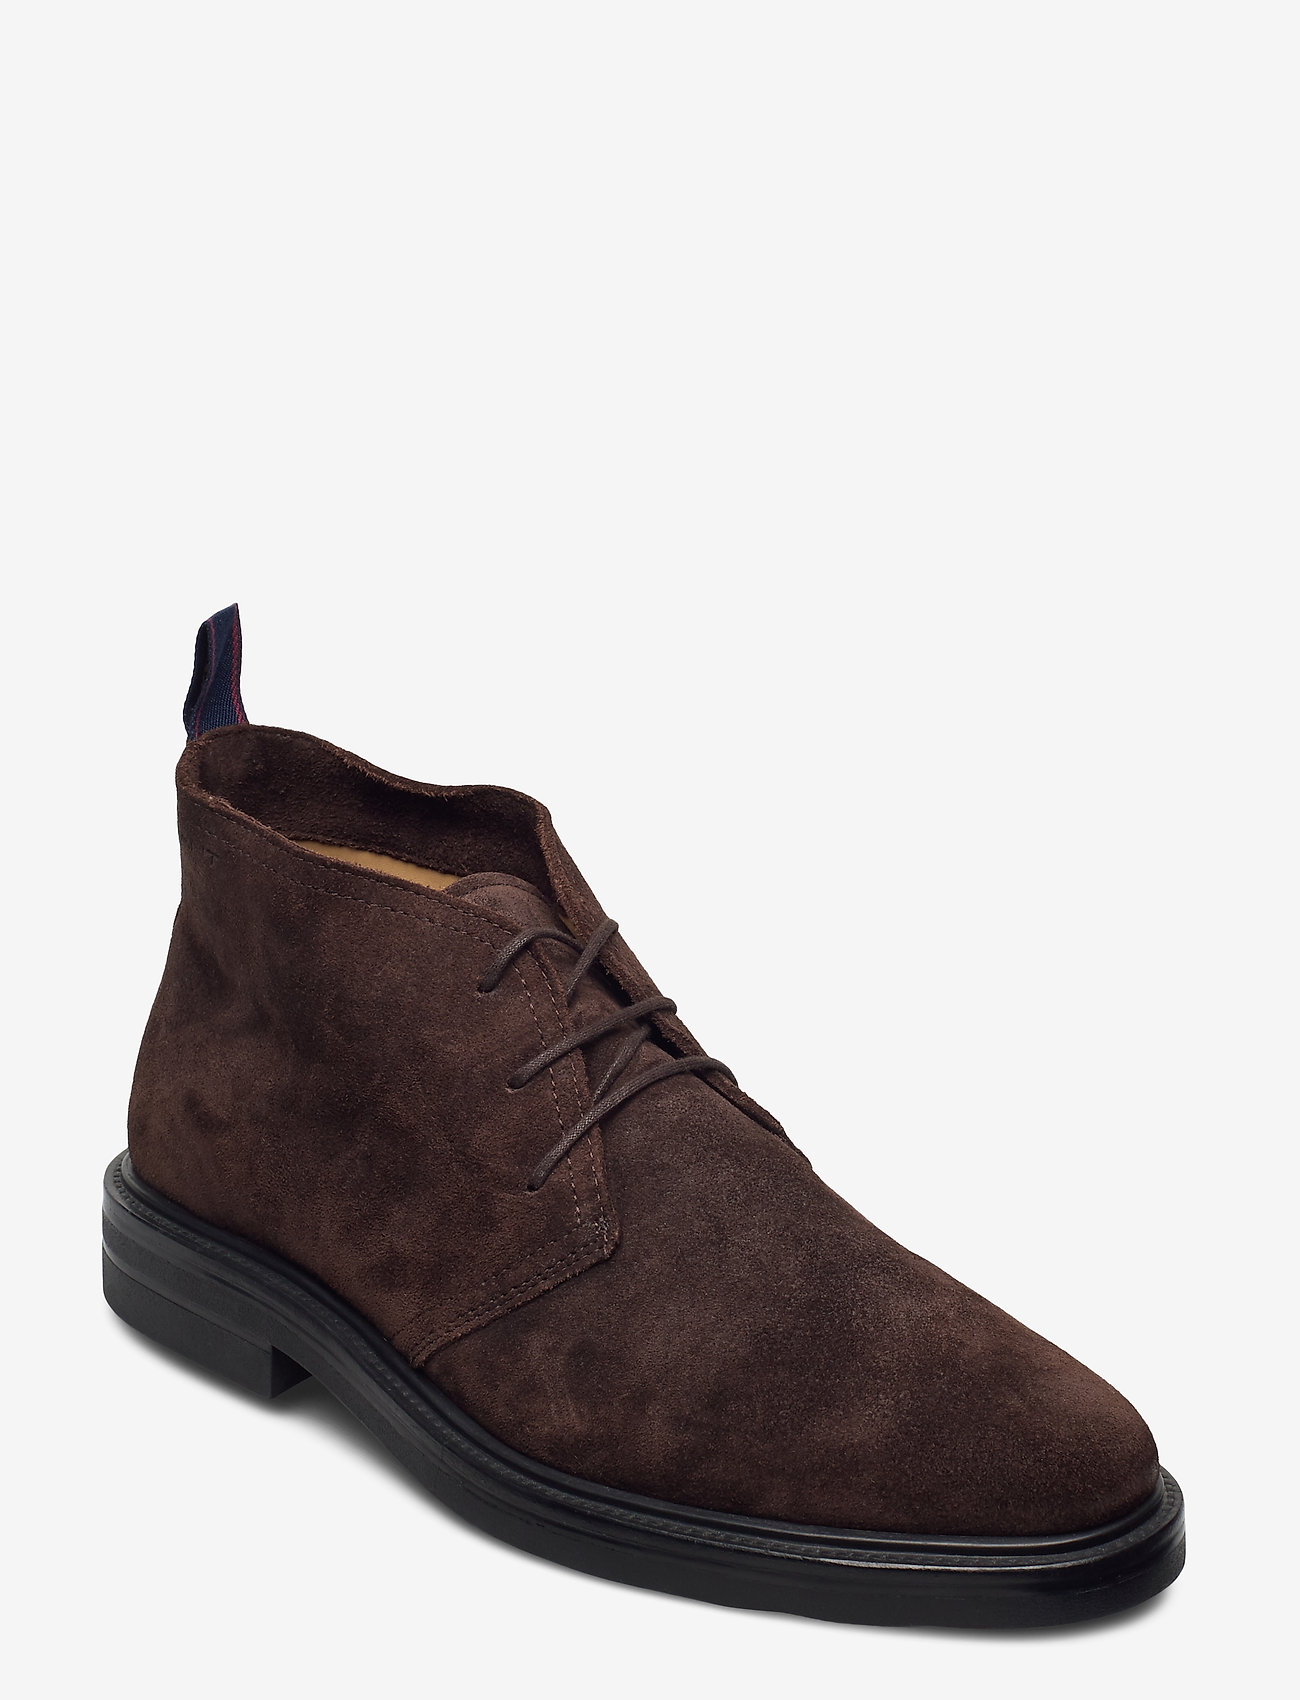 GANT - Kyree Mid lace boot - desert boots - dark brown - 0